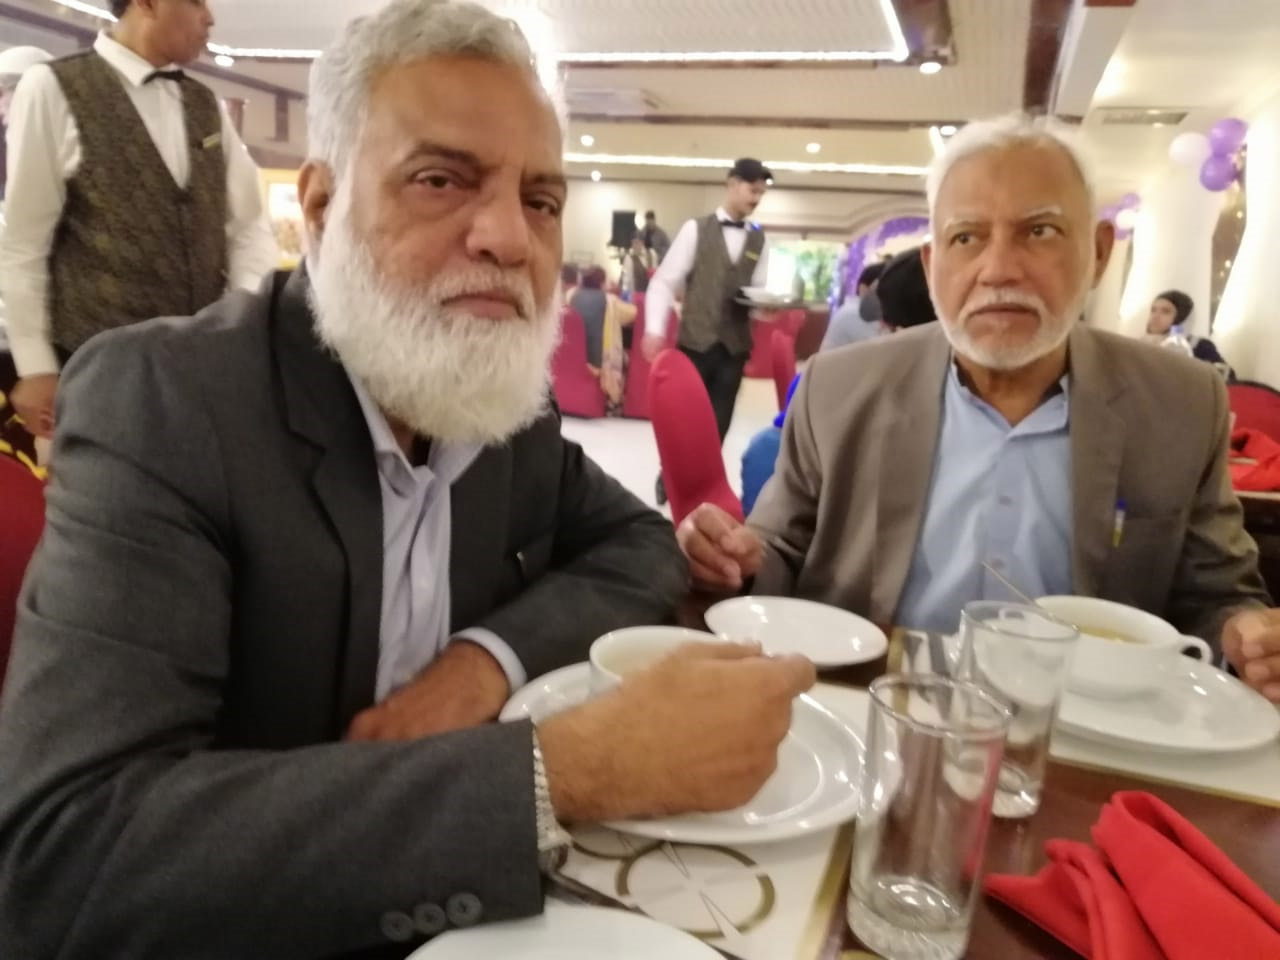 Jamiluddin Shaikh and Shabbar Hassan Abidi enjoying their brunch in the dinning hall